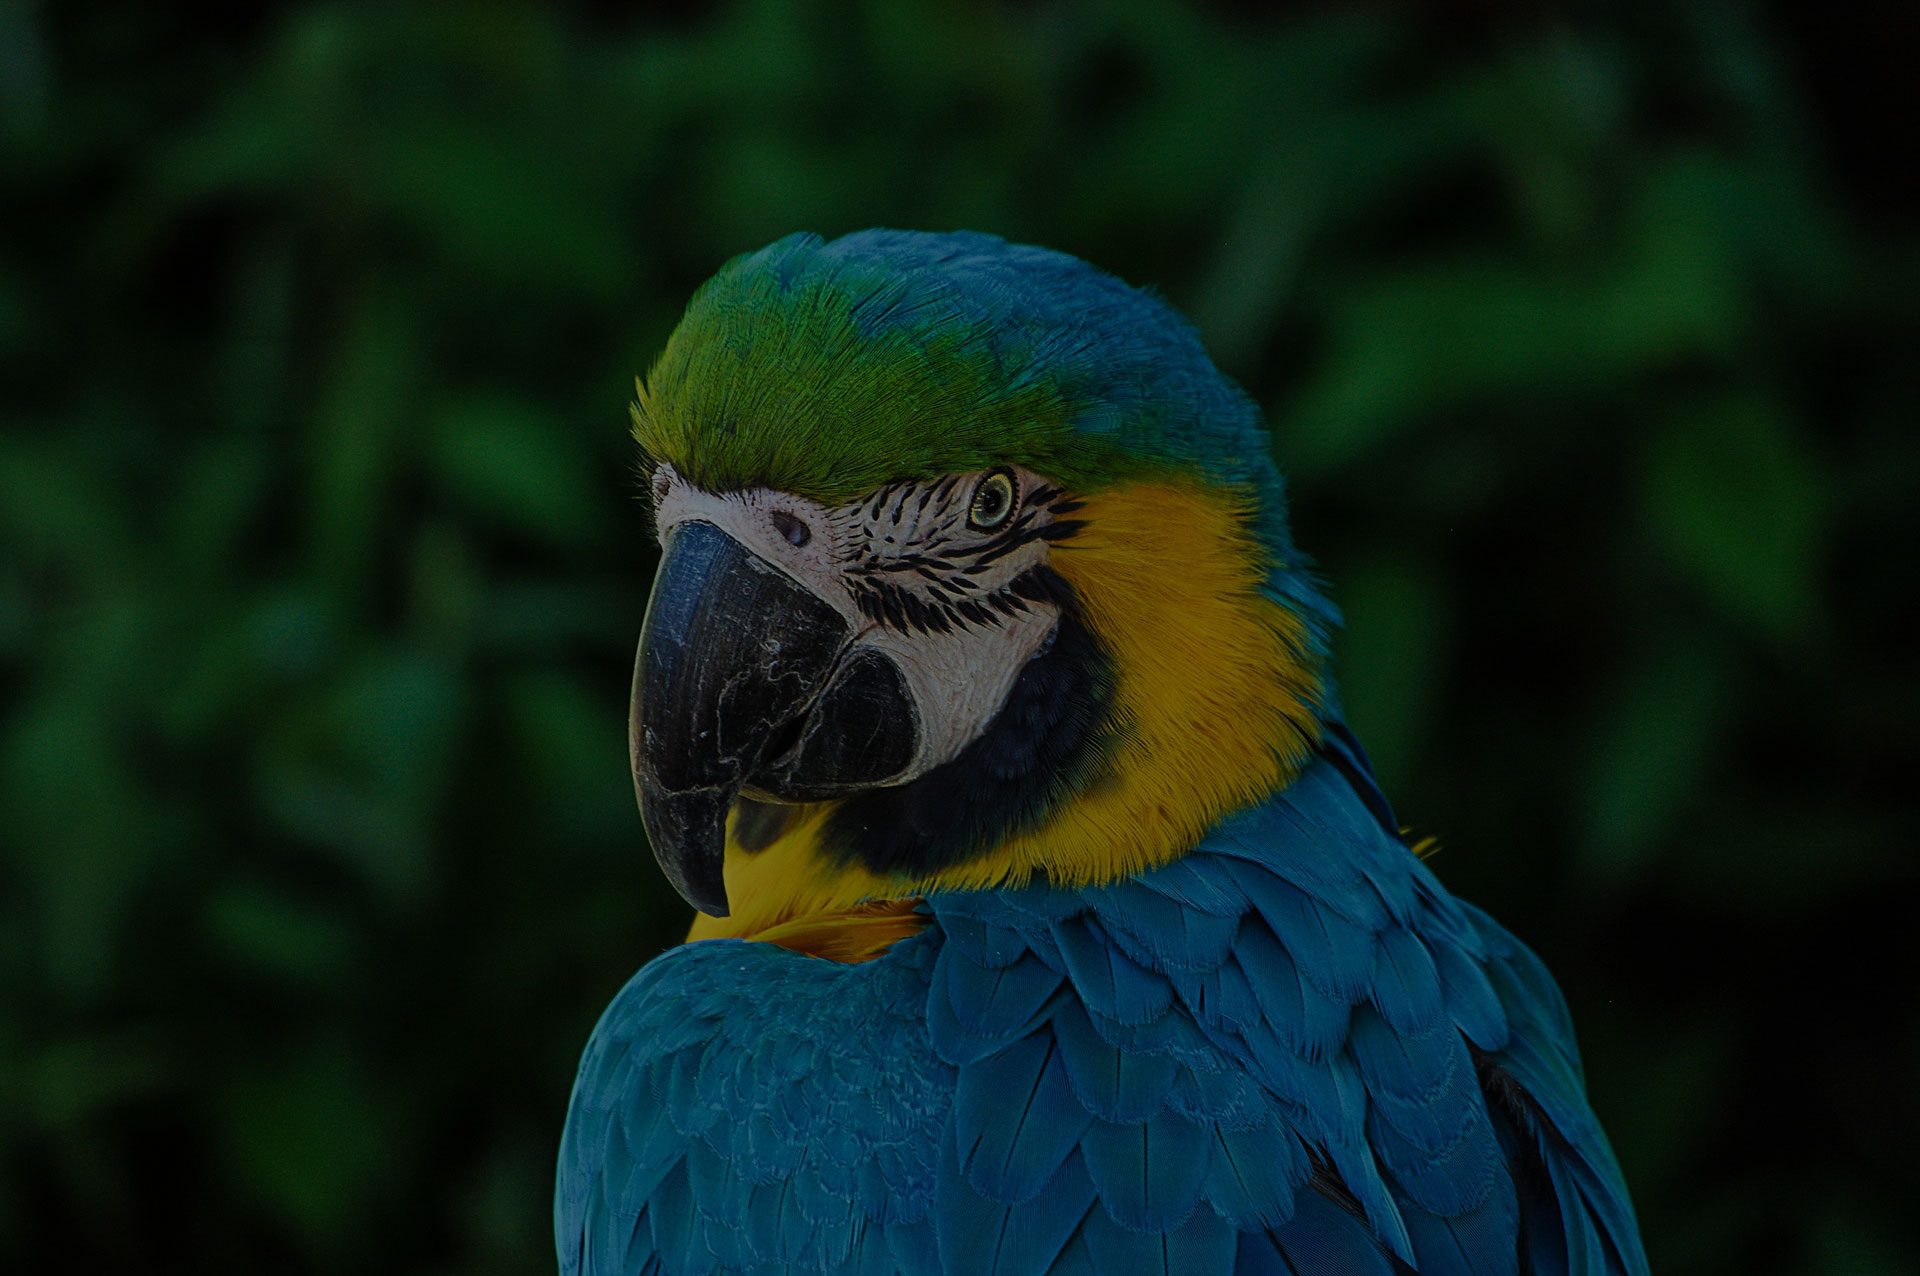 Face of a Parrot Colorful